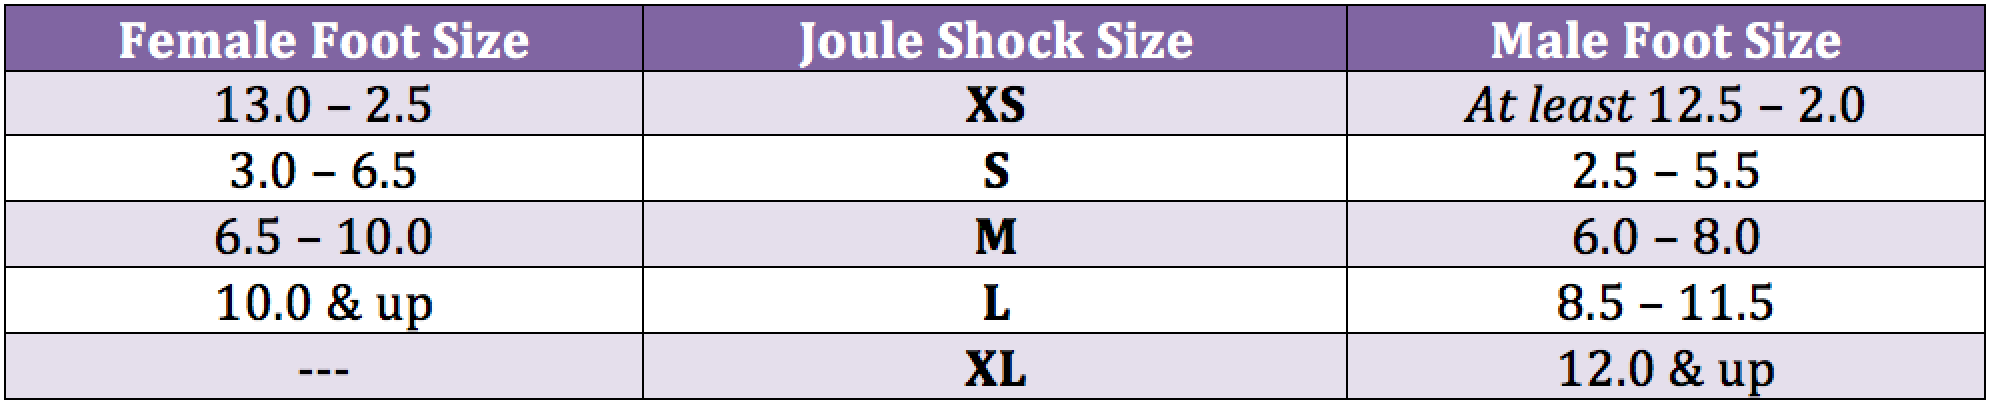 The Joule Shock Apolla Performance Wear